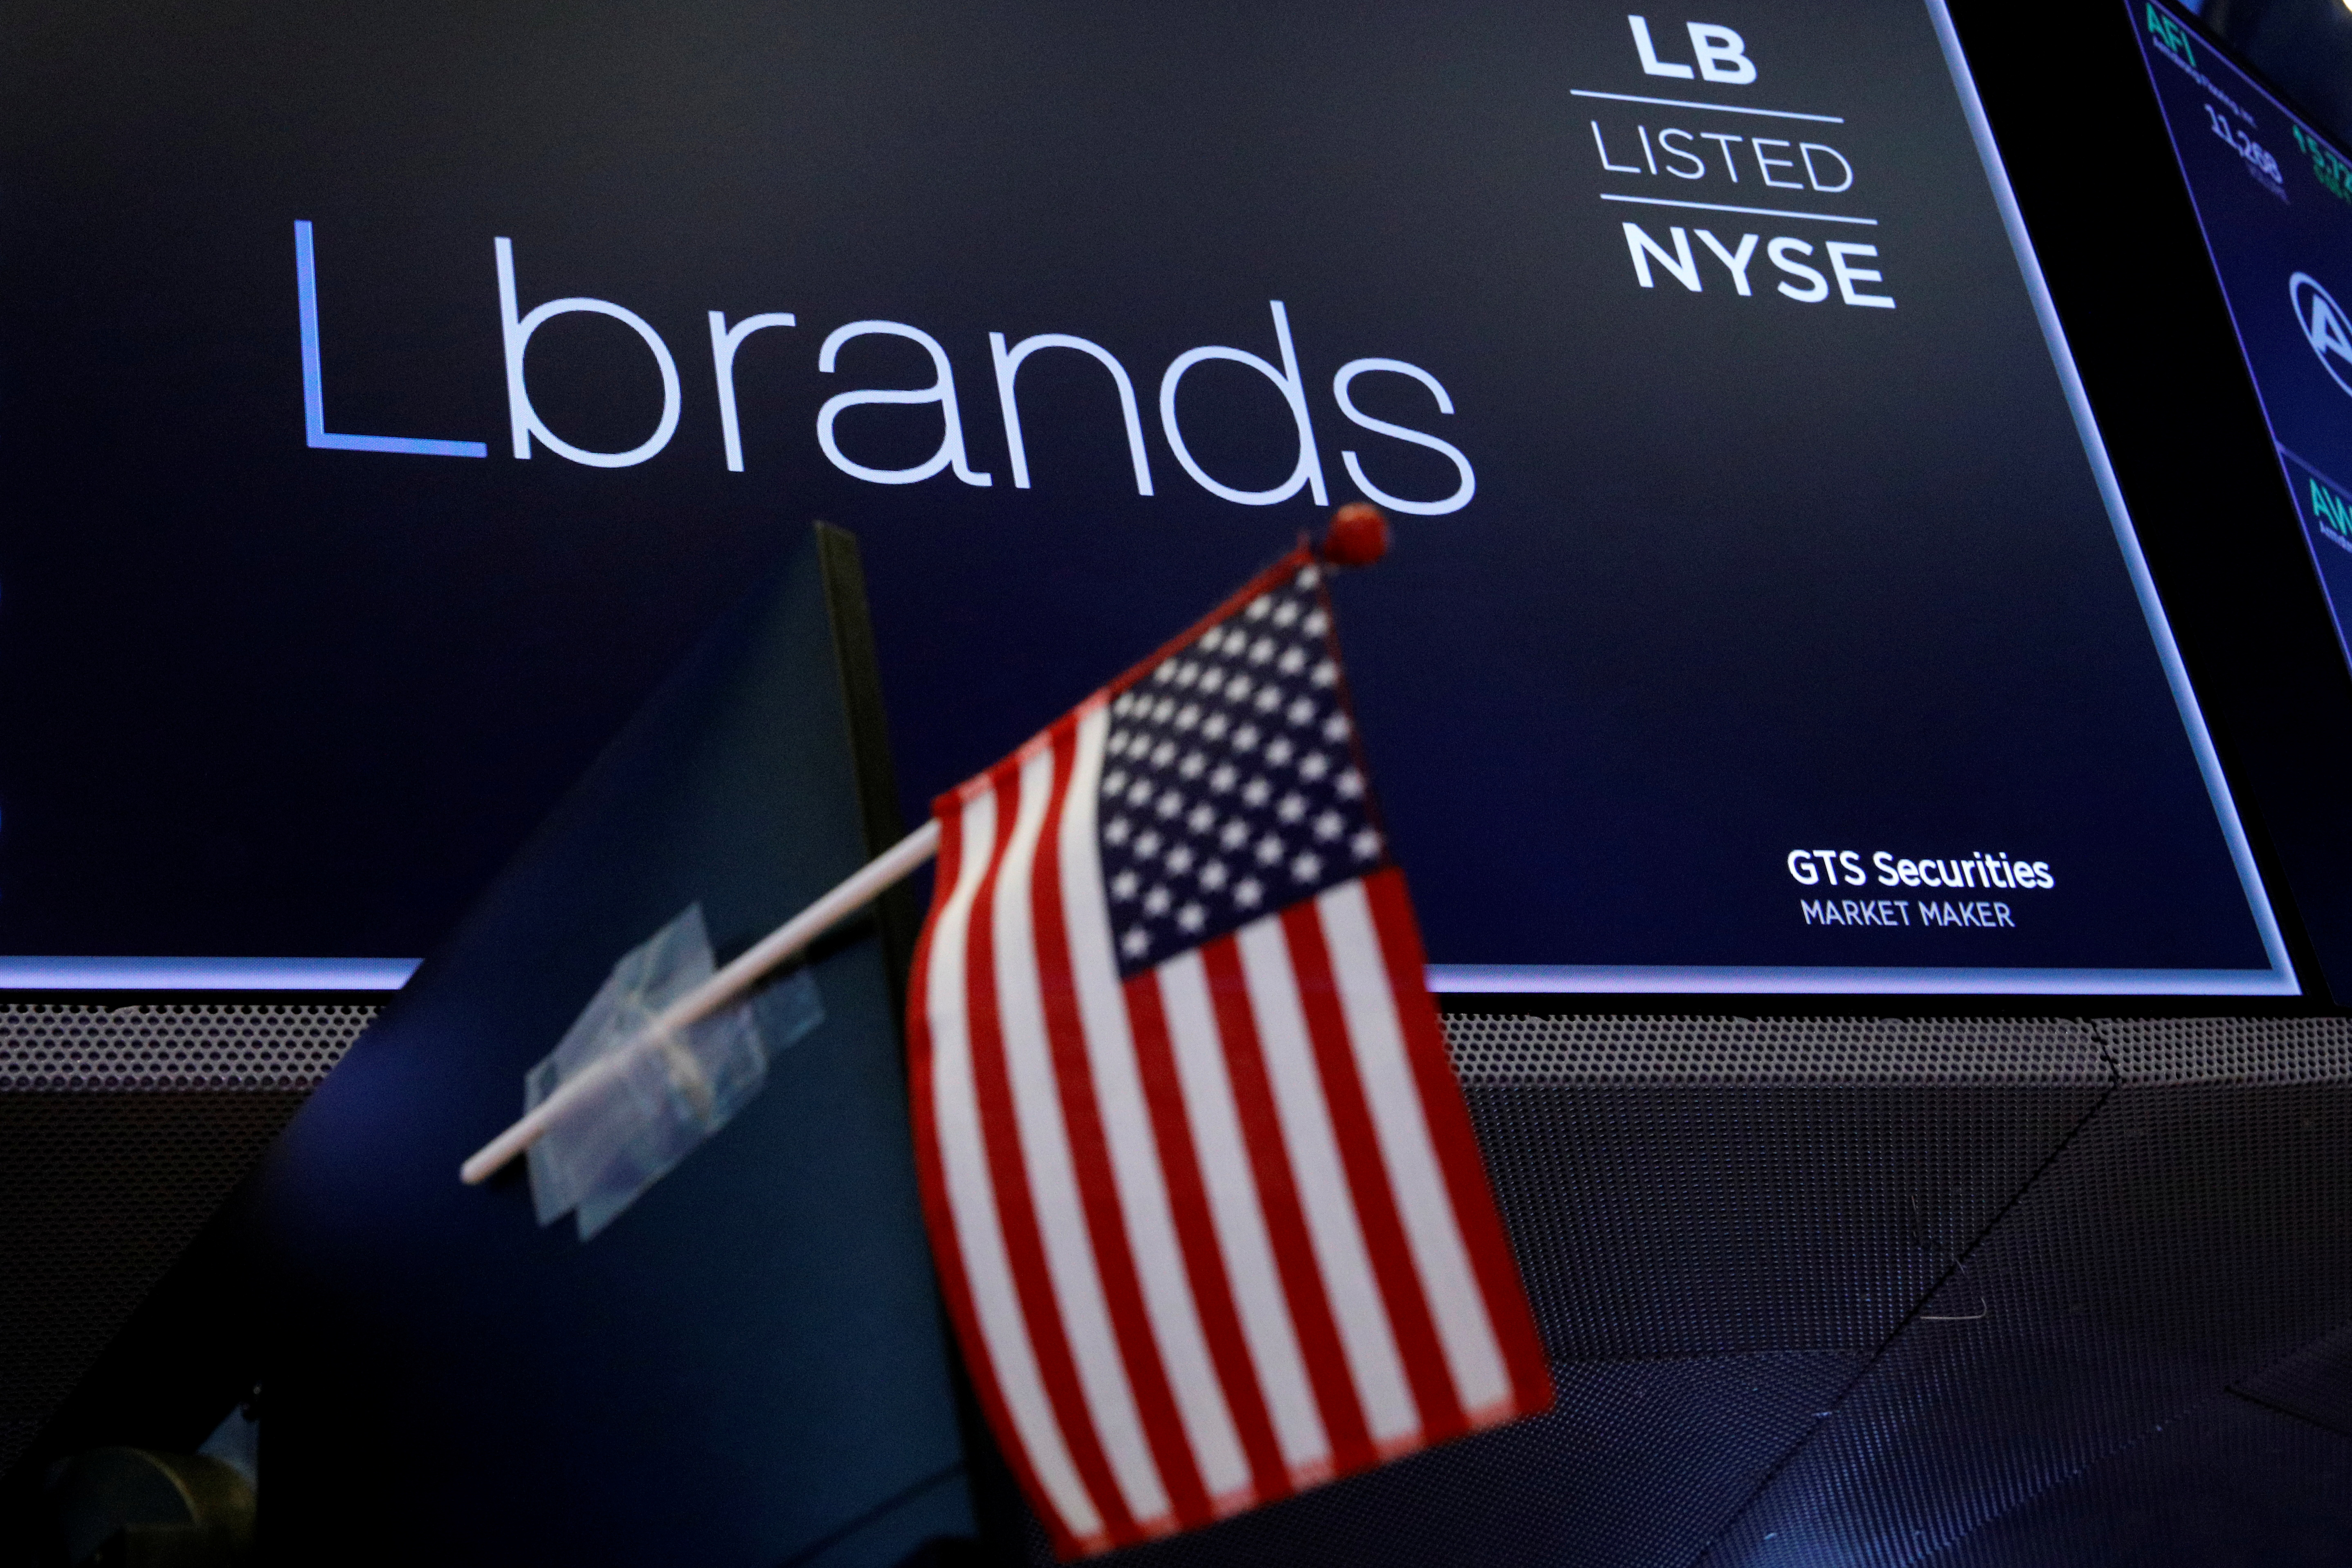 The logo and ticker for L Brands is displayed on a screen at the New York Stock Exchange (NYSE) in New York City, U.S., July 15, 2021.  REUTERS/Brendan McDermid